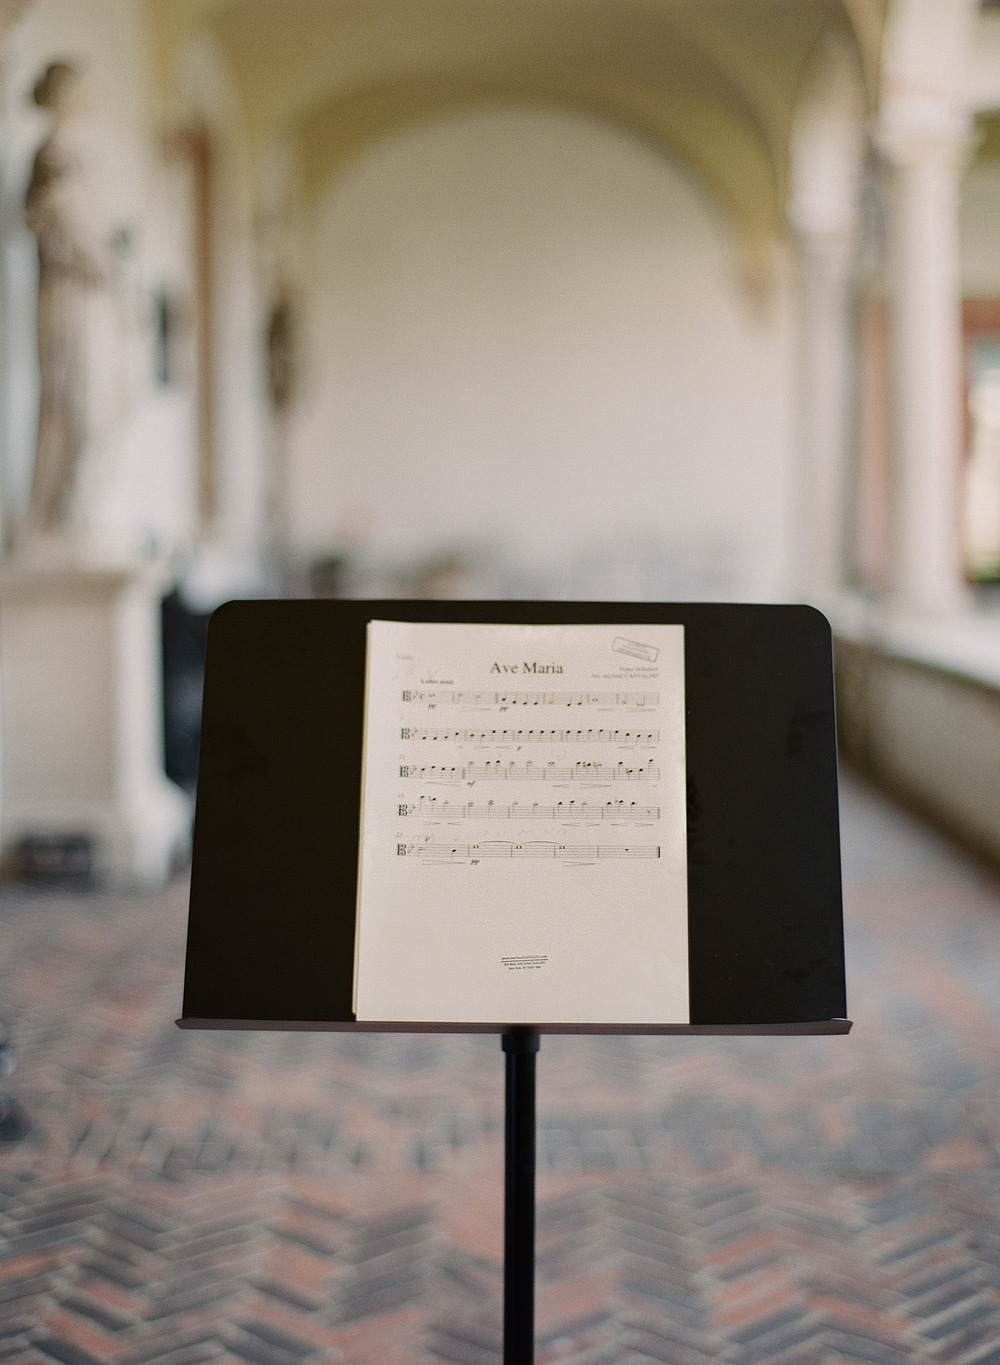 ave maria sheet music at the Destination Italian wedding at the Villa Terrace - a favorite wedding venue of international destination wedding photographer ,lexia frank, who is a film photographer for luxury weddings worldwide